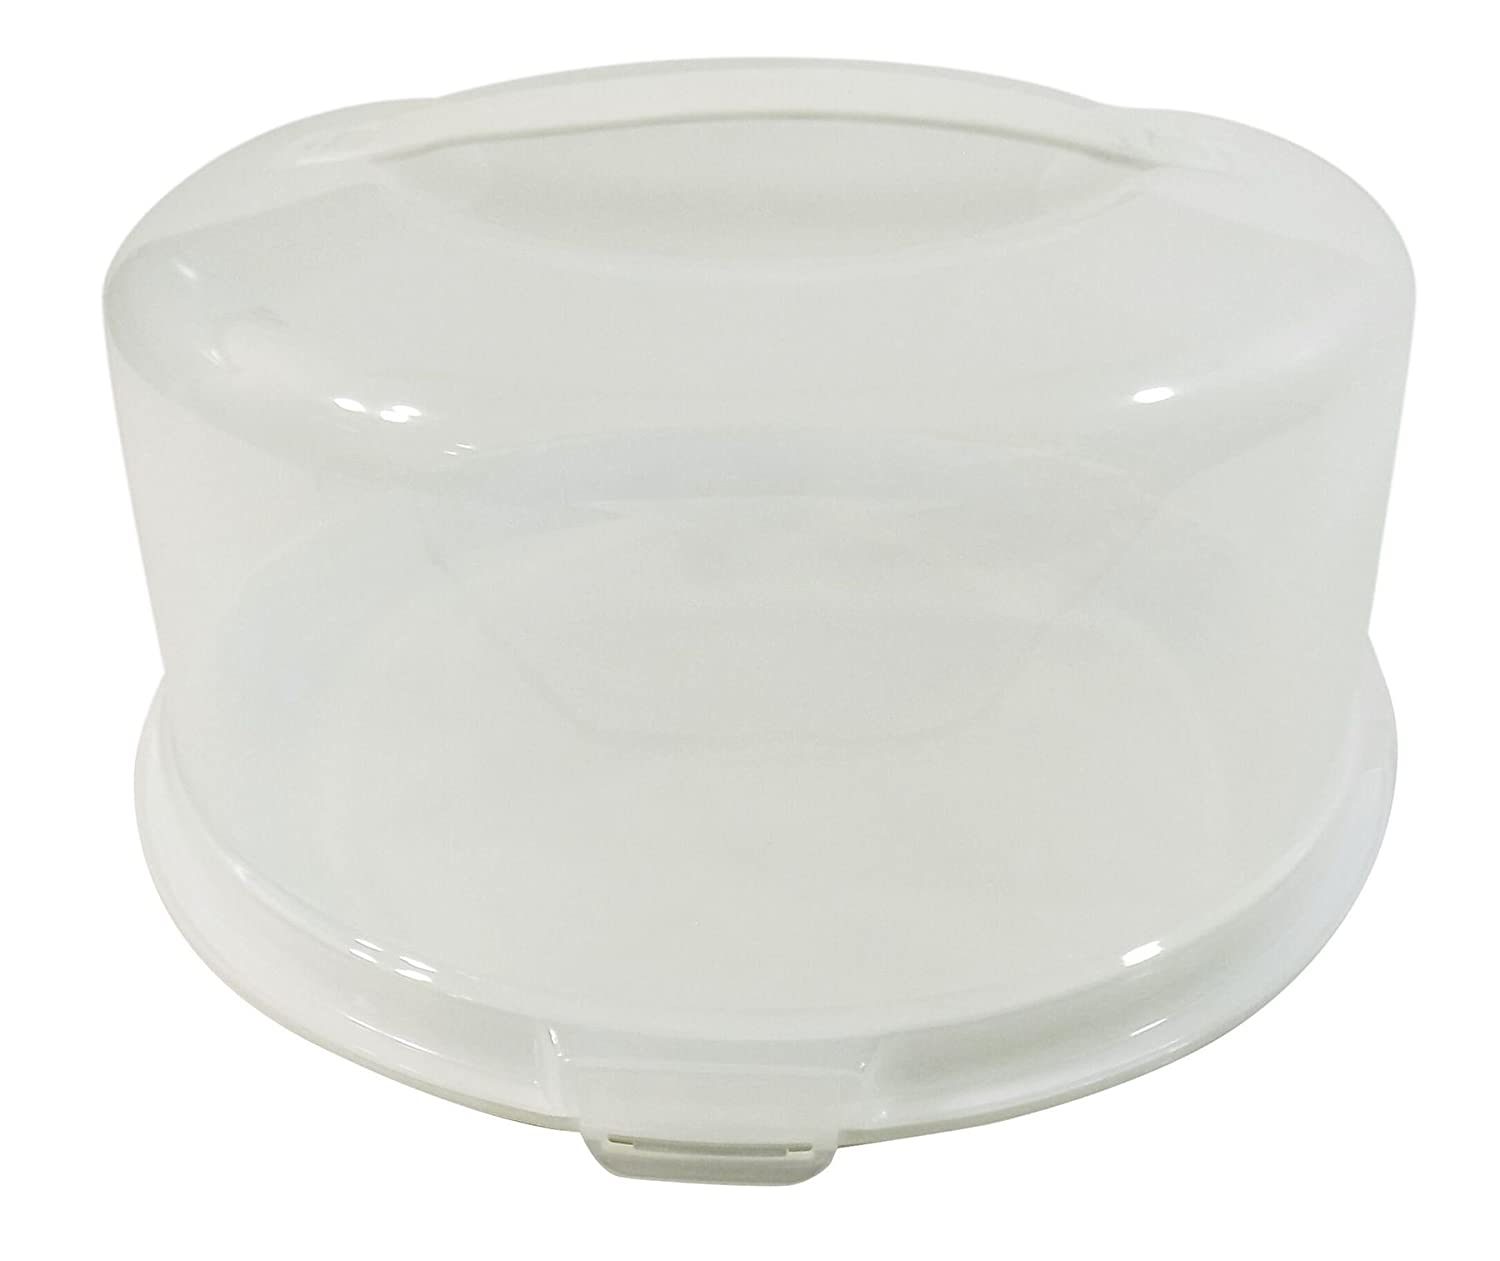 ROUND LARGE CAKE BUNS PIE FOOD STORAGE PLASTIC TUB POT CARRIER BOX 33CM MADE IN UK STORAGE UNIQUE